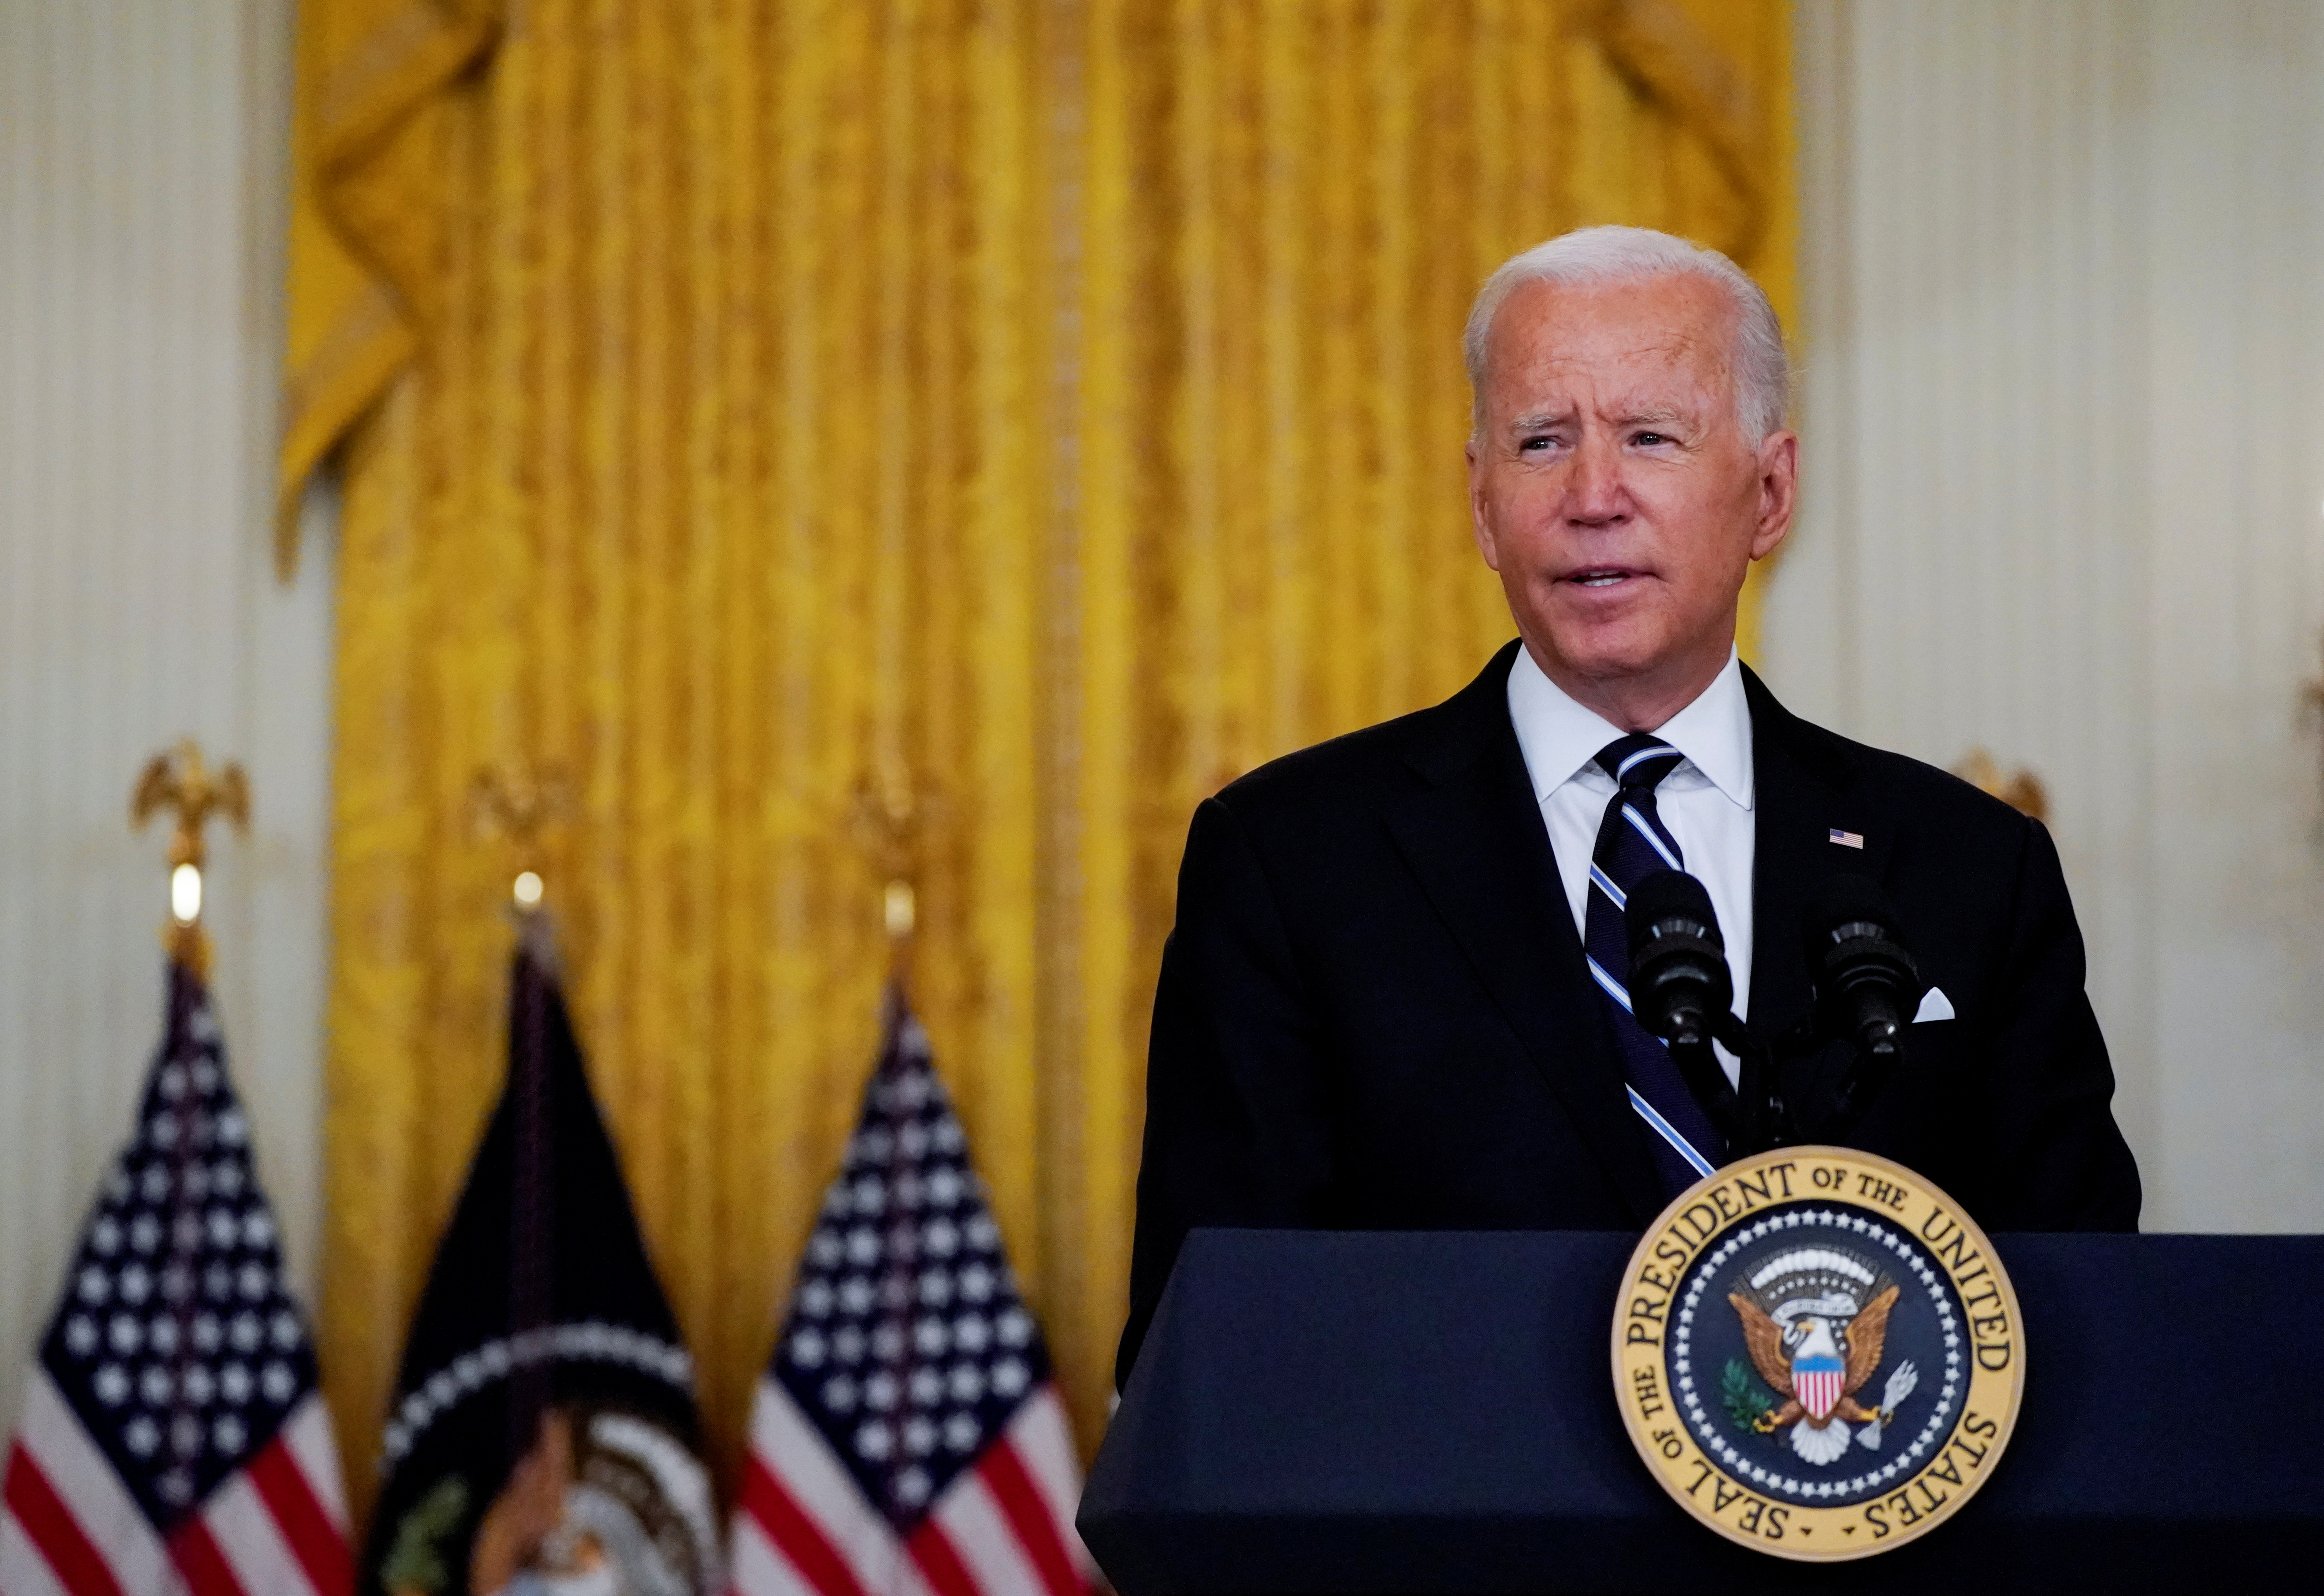 U.S. President Joe Biden delivers remarks on the coronavirus disease (COVID-19) response and  vaccination program during a speech in the East Room at the White House in Washington, U.S., August 18, 2021. REUTERS/Elizabeth Frantz